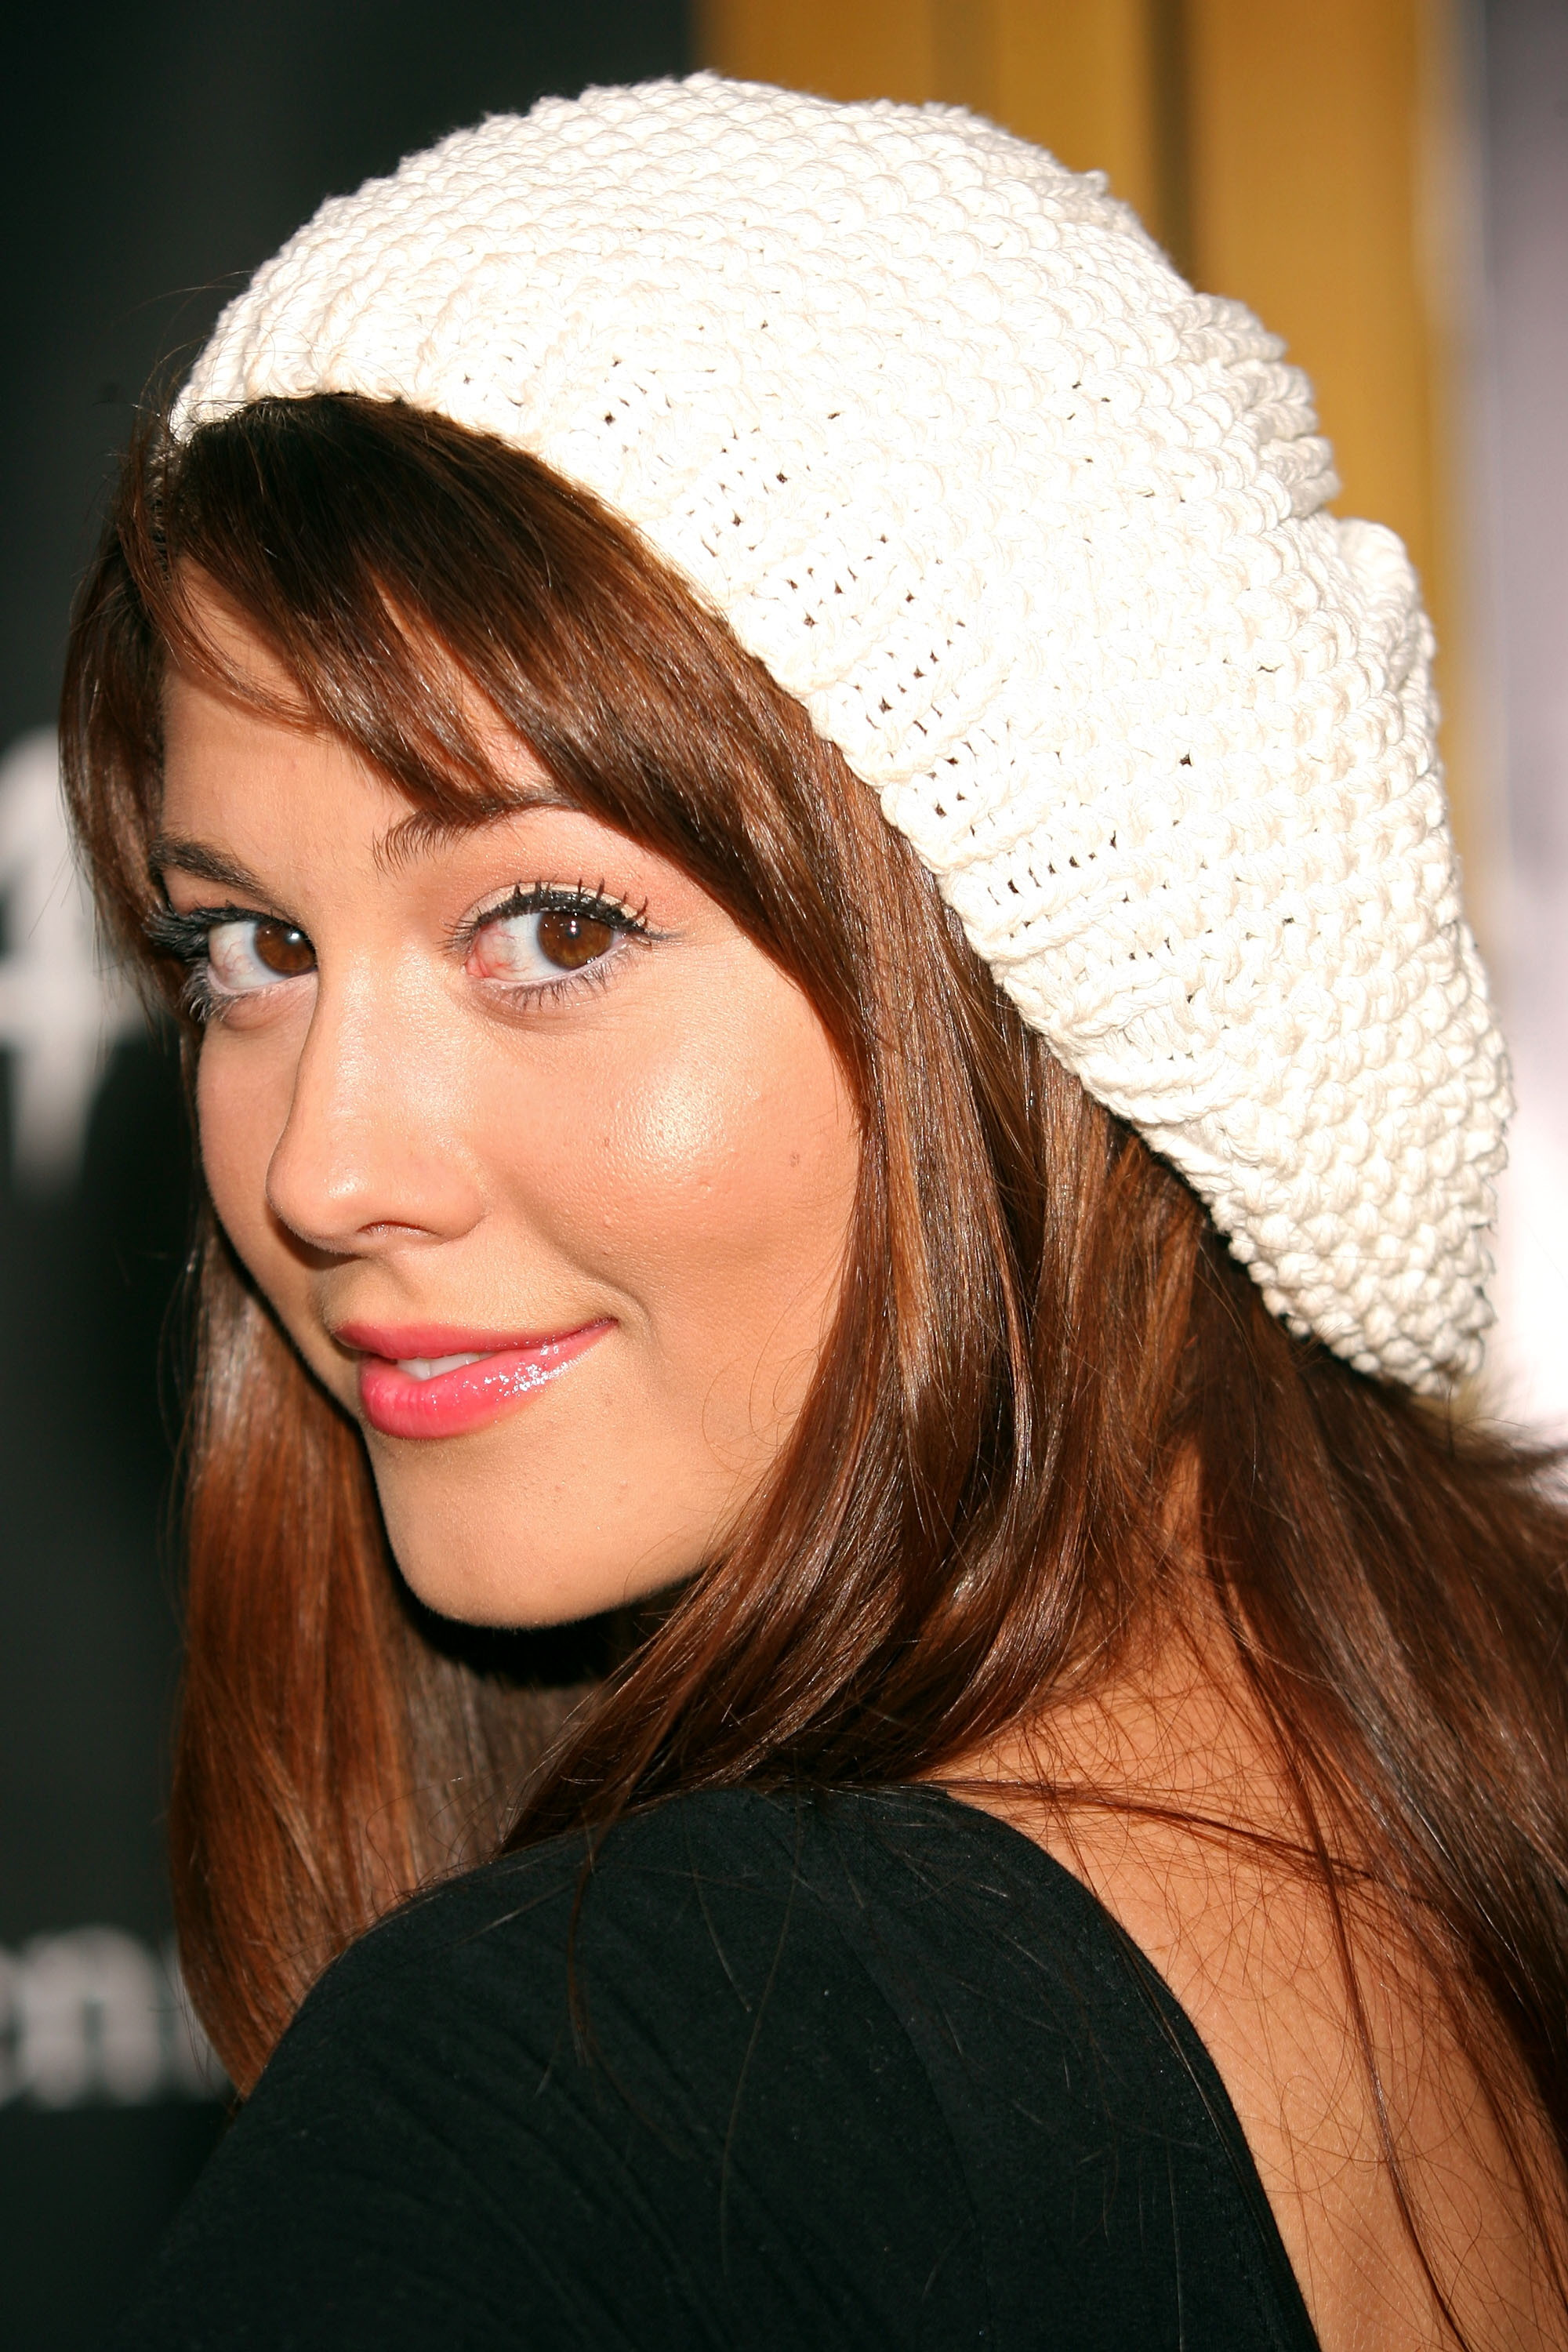 Mary Elizabeth Winstead photo (mary_elizabeth_winstead020, 2000 x 3000 pixels, 968 kB)